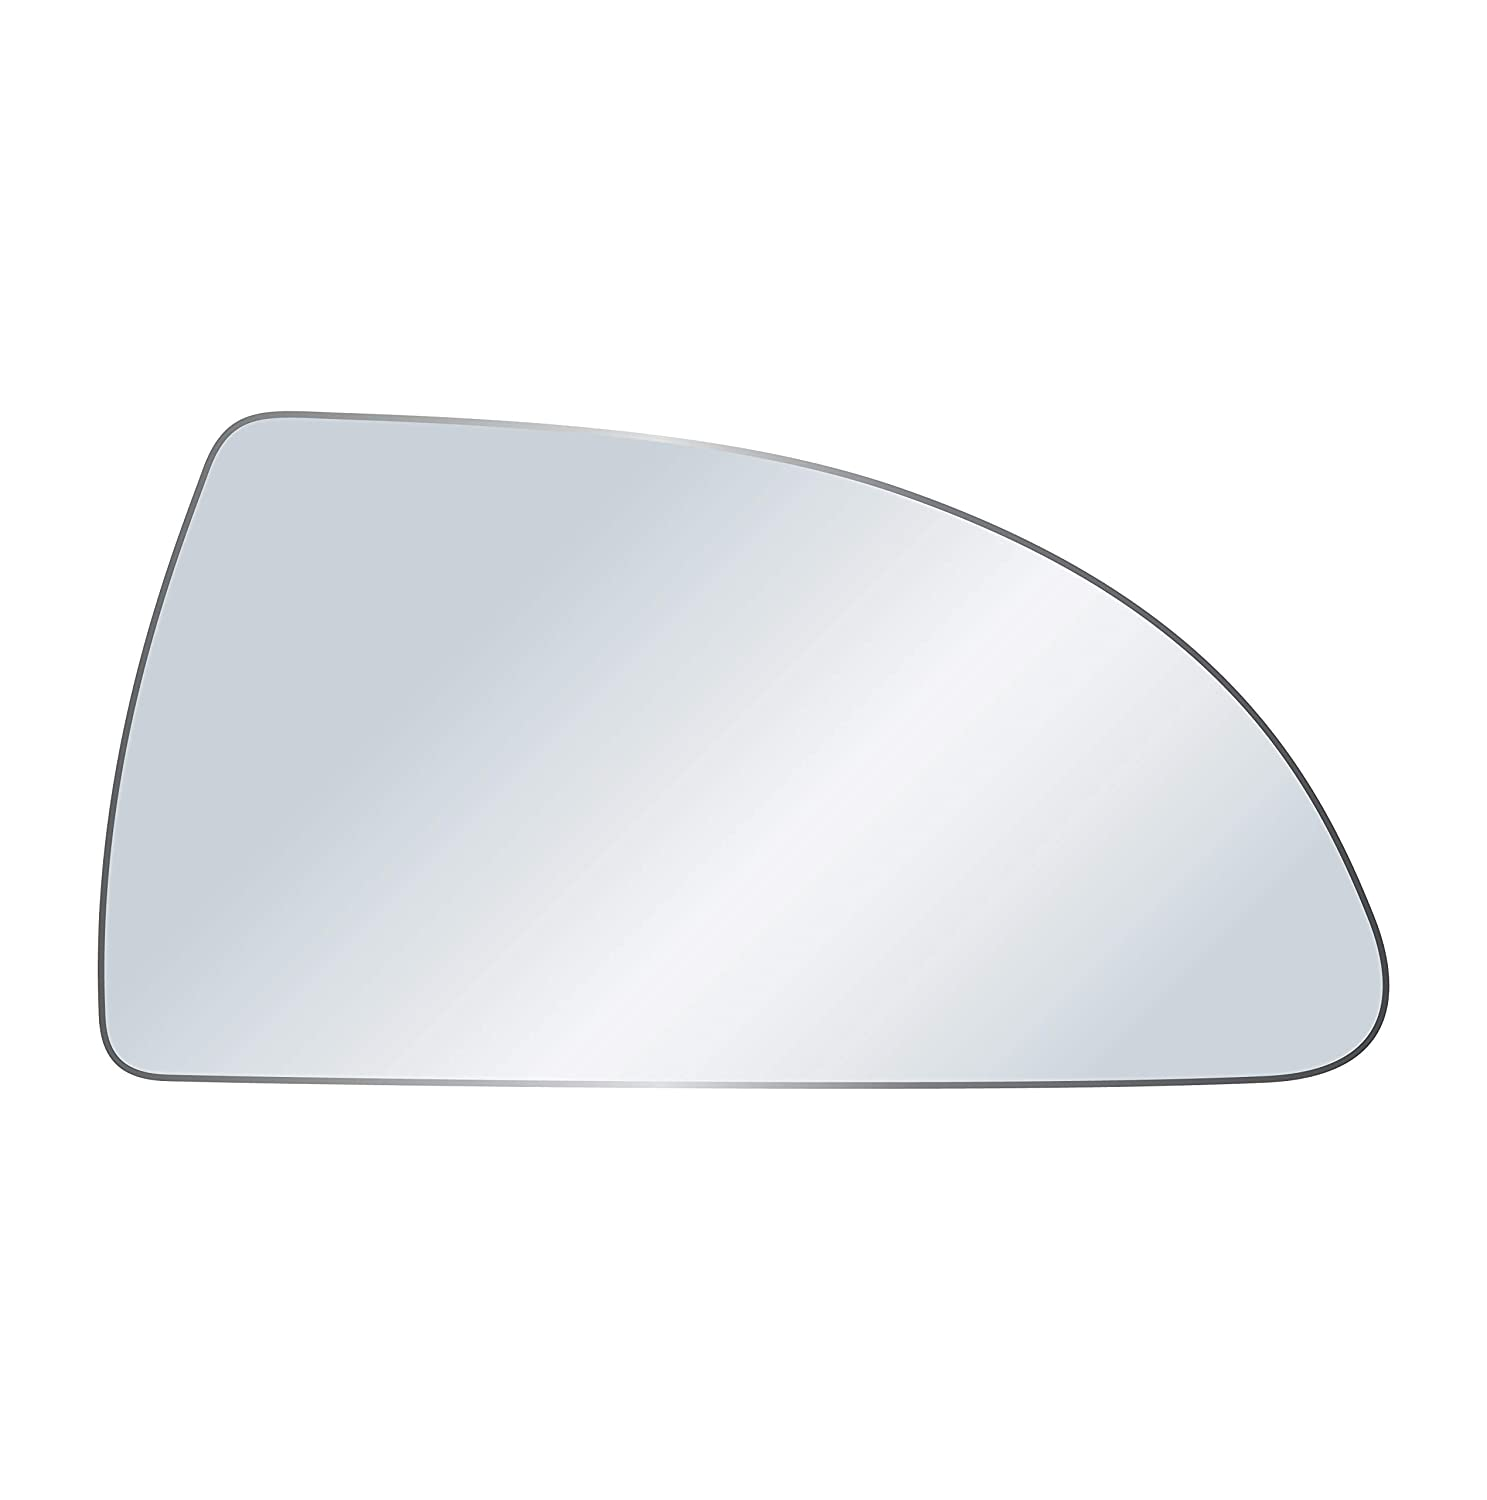 exactafit 8991R Replacement Passenger Side Right Hand Mirror Glass Compatible With 2006-2013 Chevrolet Chevy Impala 2014-2016 Impala Limited By Rugged TUFF